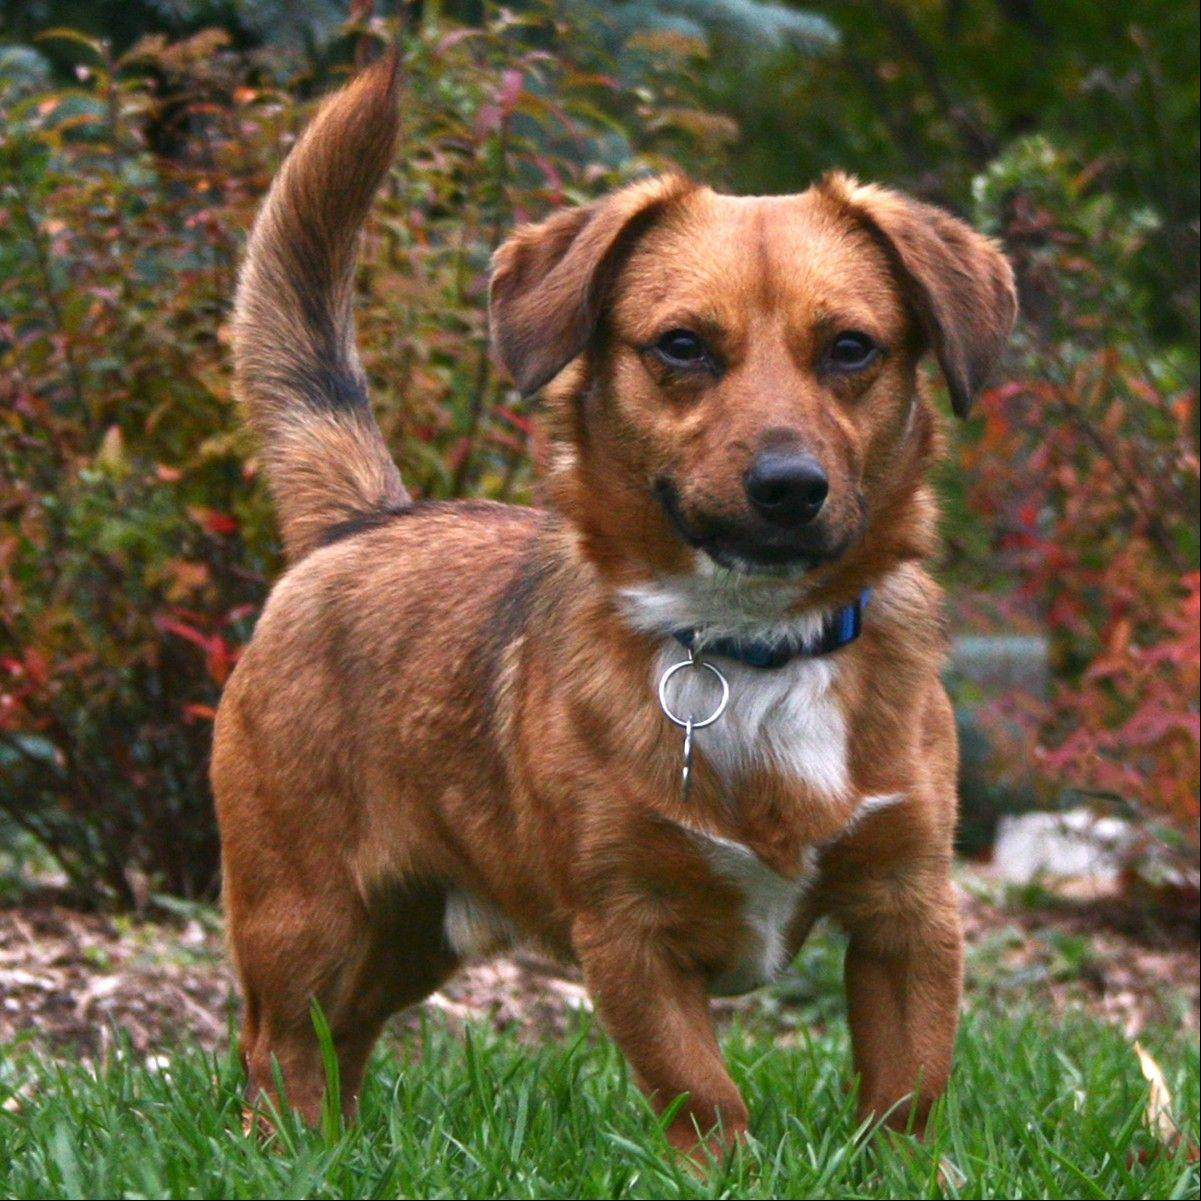 Howie, a male Dachshund, is about one year old and weighs around 11 pounds.